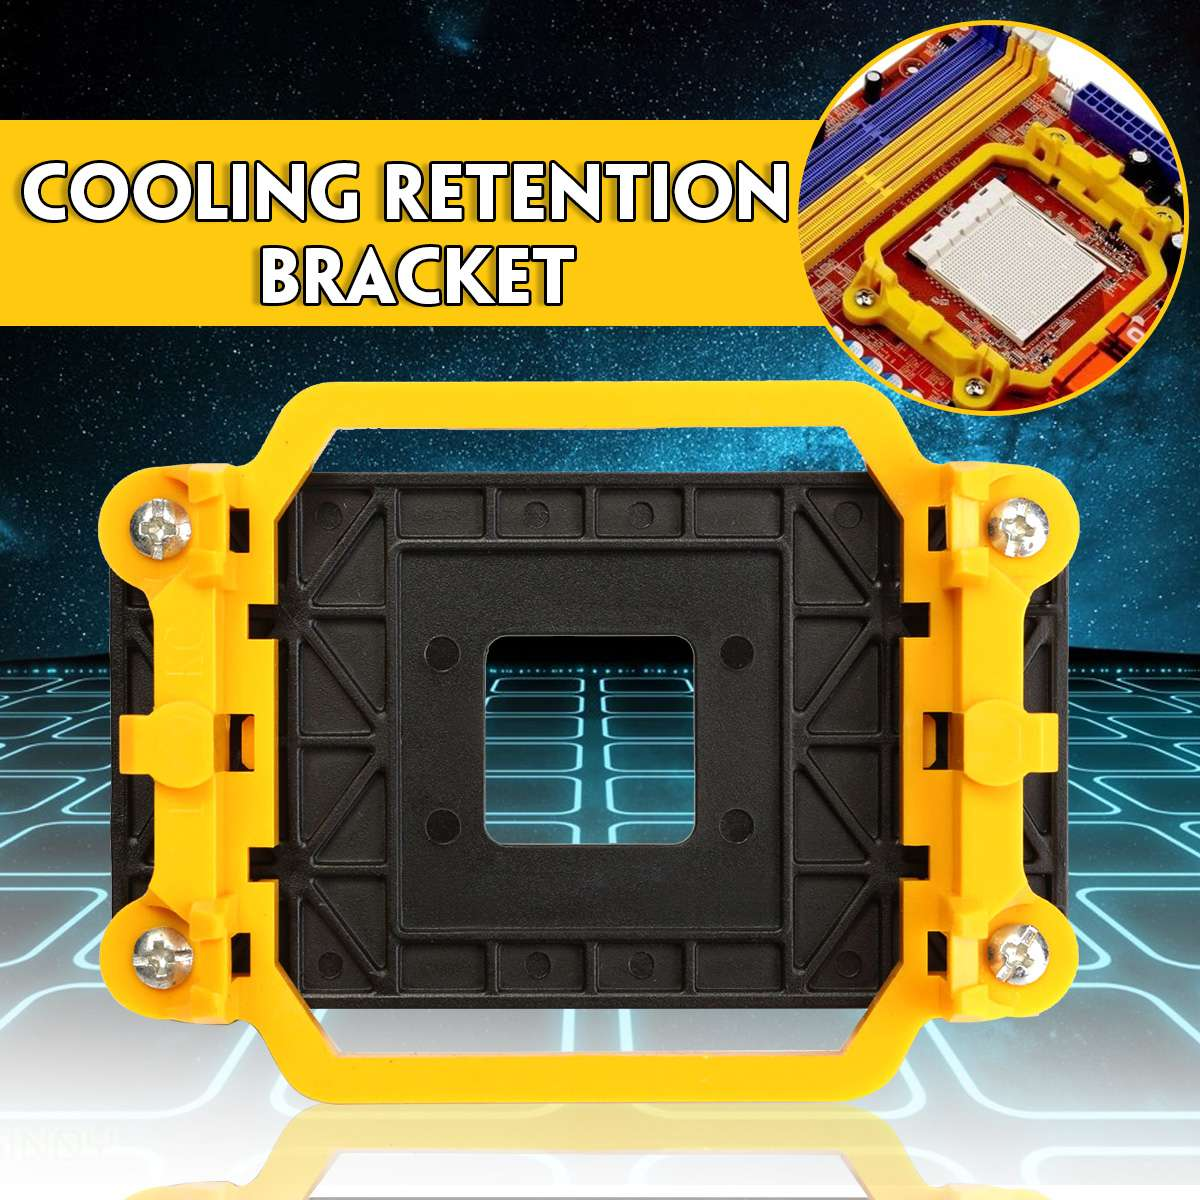 Plastic CPU Cooler Cooling Retention Fan Bracket Mount For AMD Socket AM3 AM3+ AM2 AM2+ 940 CPU's Motherboards 11x8cm Light image